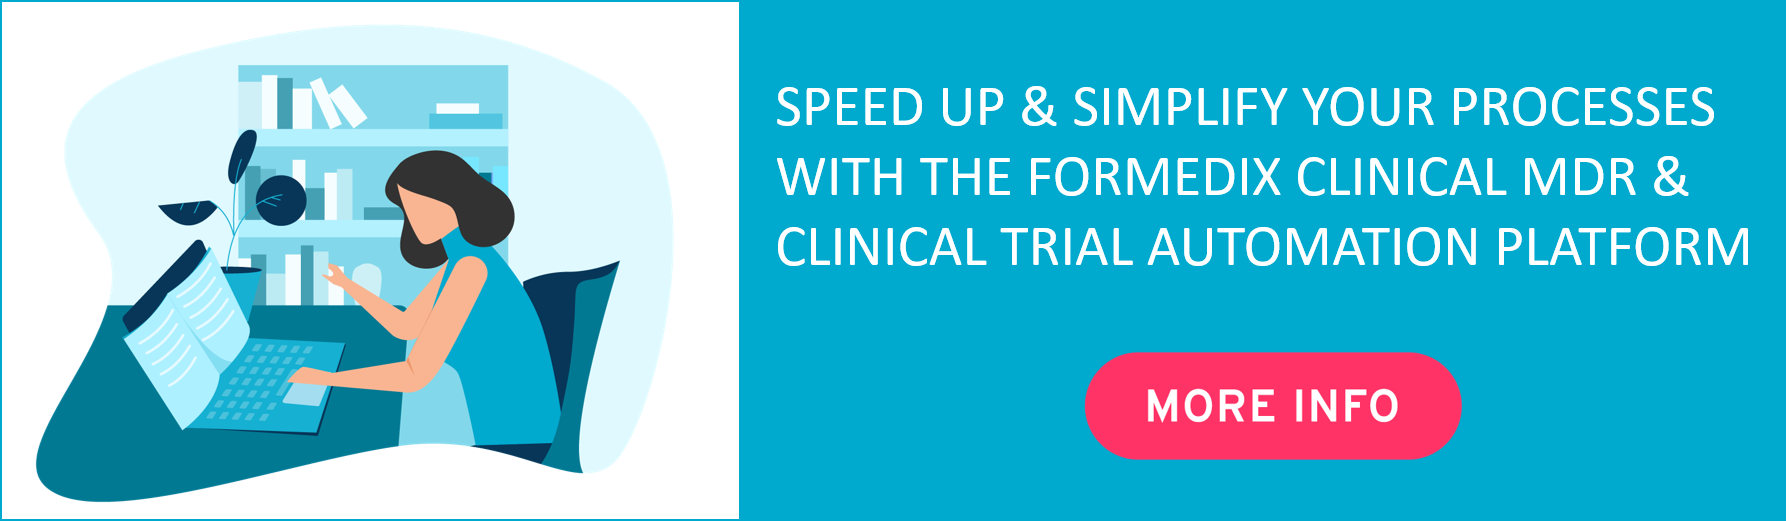 clinical-trial-automation-clinical-mdr